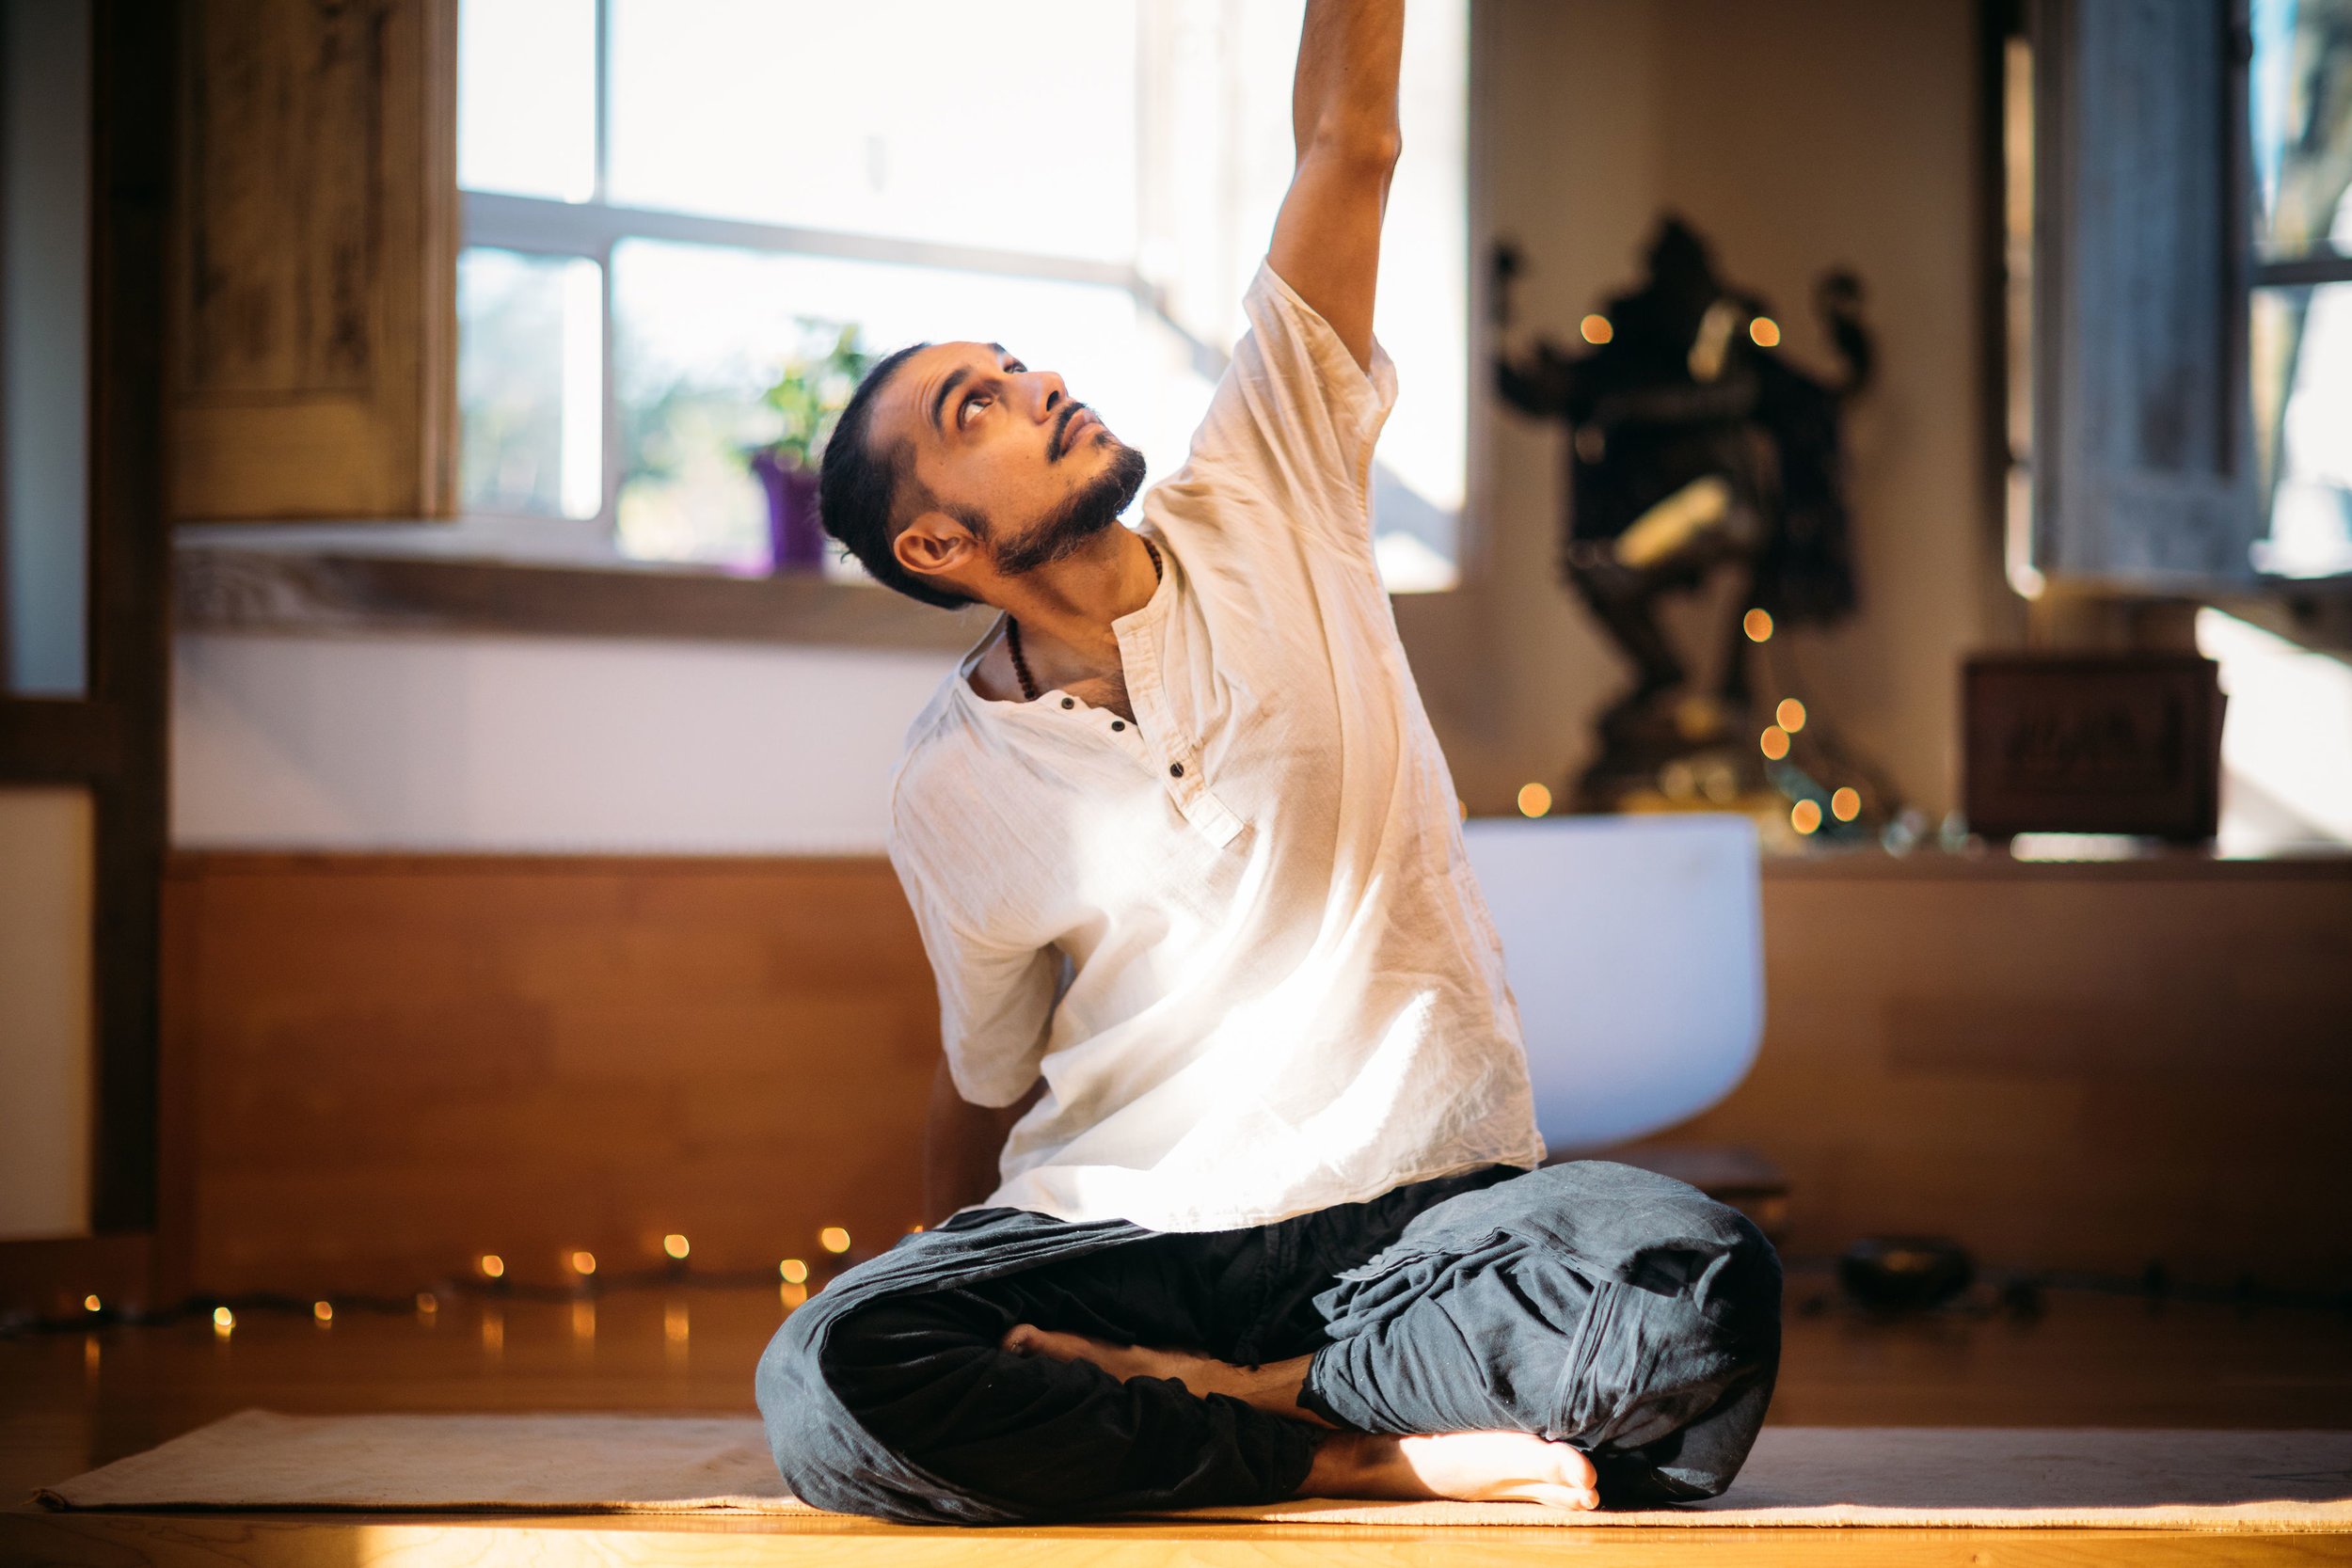 - To deepen your practice, understand the principlesTo understand the principles, contemplate the teachingsTo contemplate the teachings, examine your life.